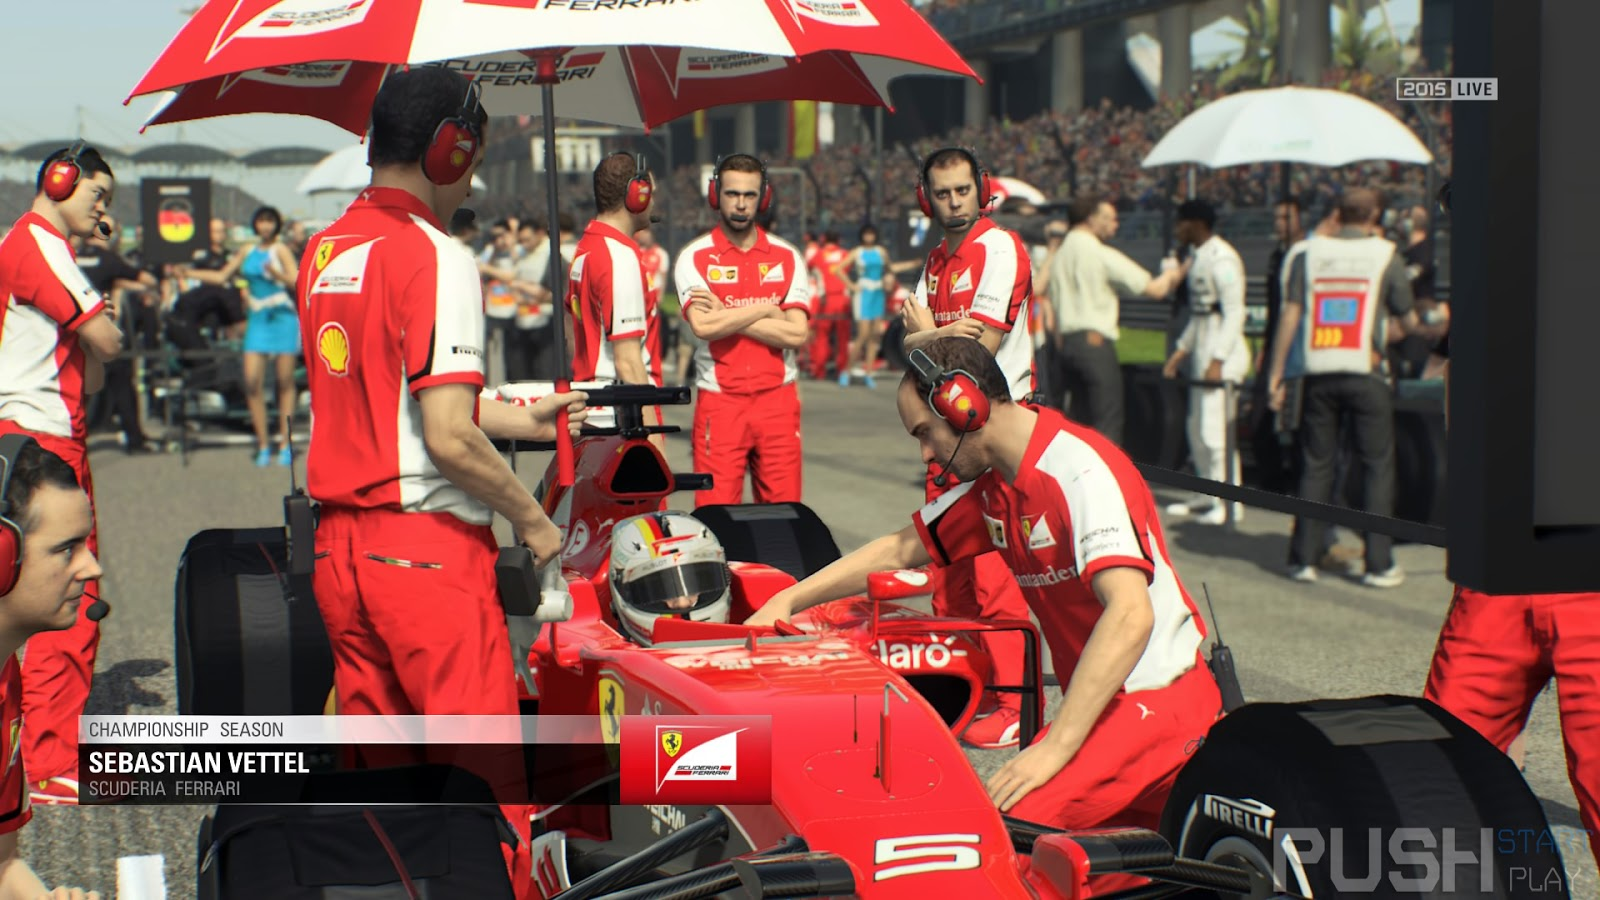 f1 2016 pc game full version free download free download pc games repack reloaded. Black Bedroom Furniture Sets. Home Design Ideas